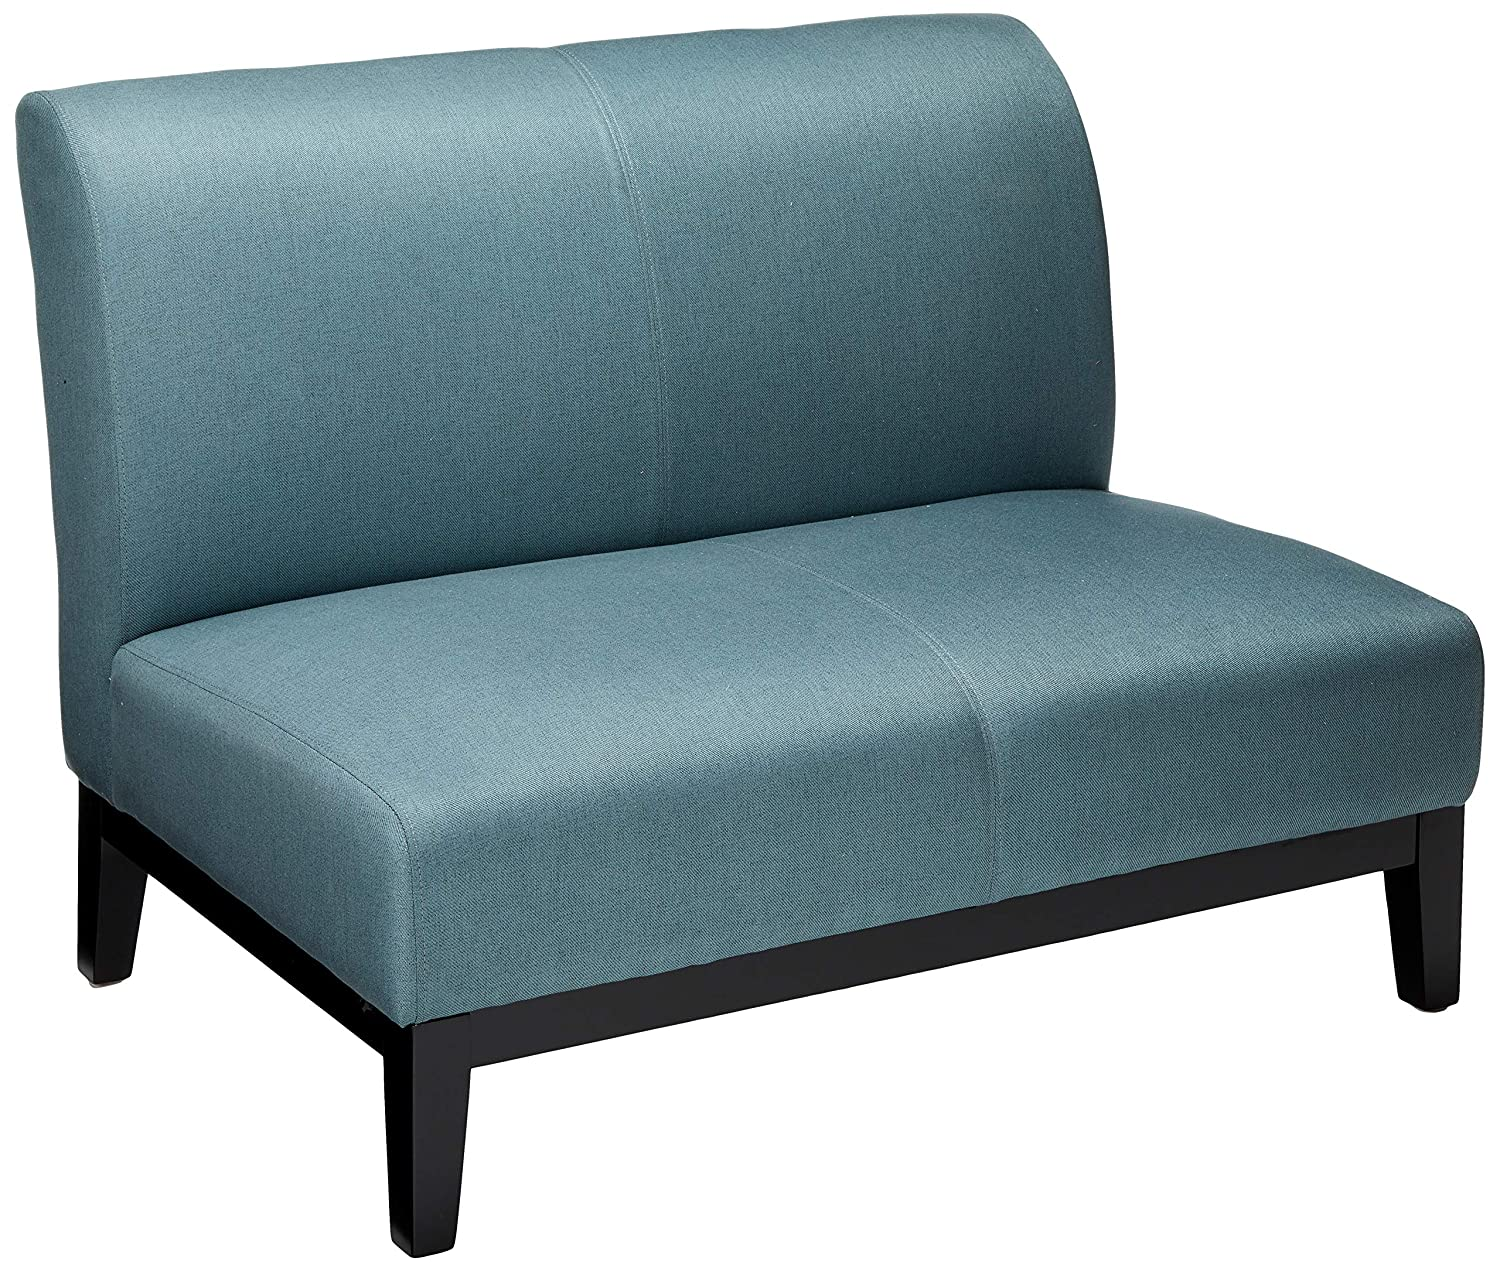 Awesome Christopher Knight Home Knightley Blue Grey Fabric Love Seat Settee Machost Co Dining Chair Design Ideas Machostcouk